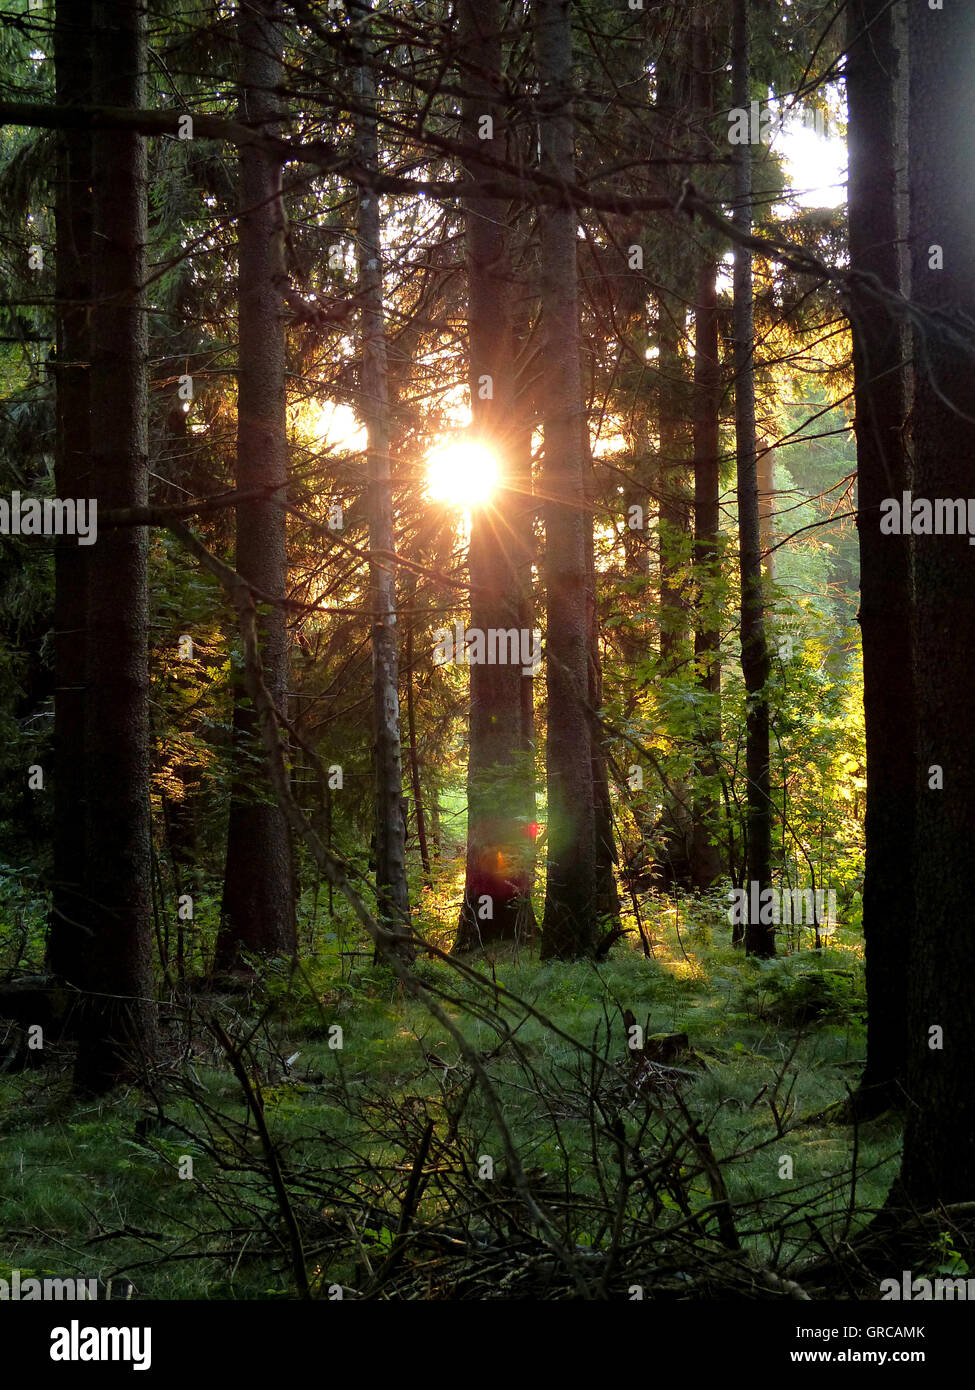 Forest, Rising Sun Shining Through The Trees - Stock Image